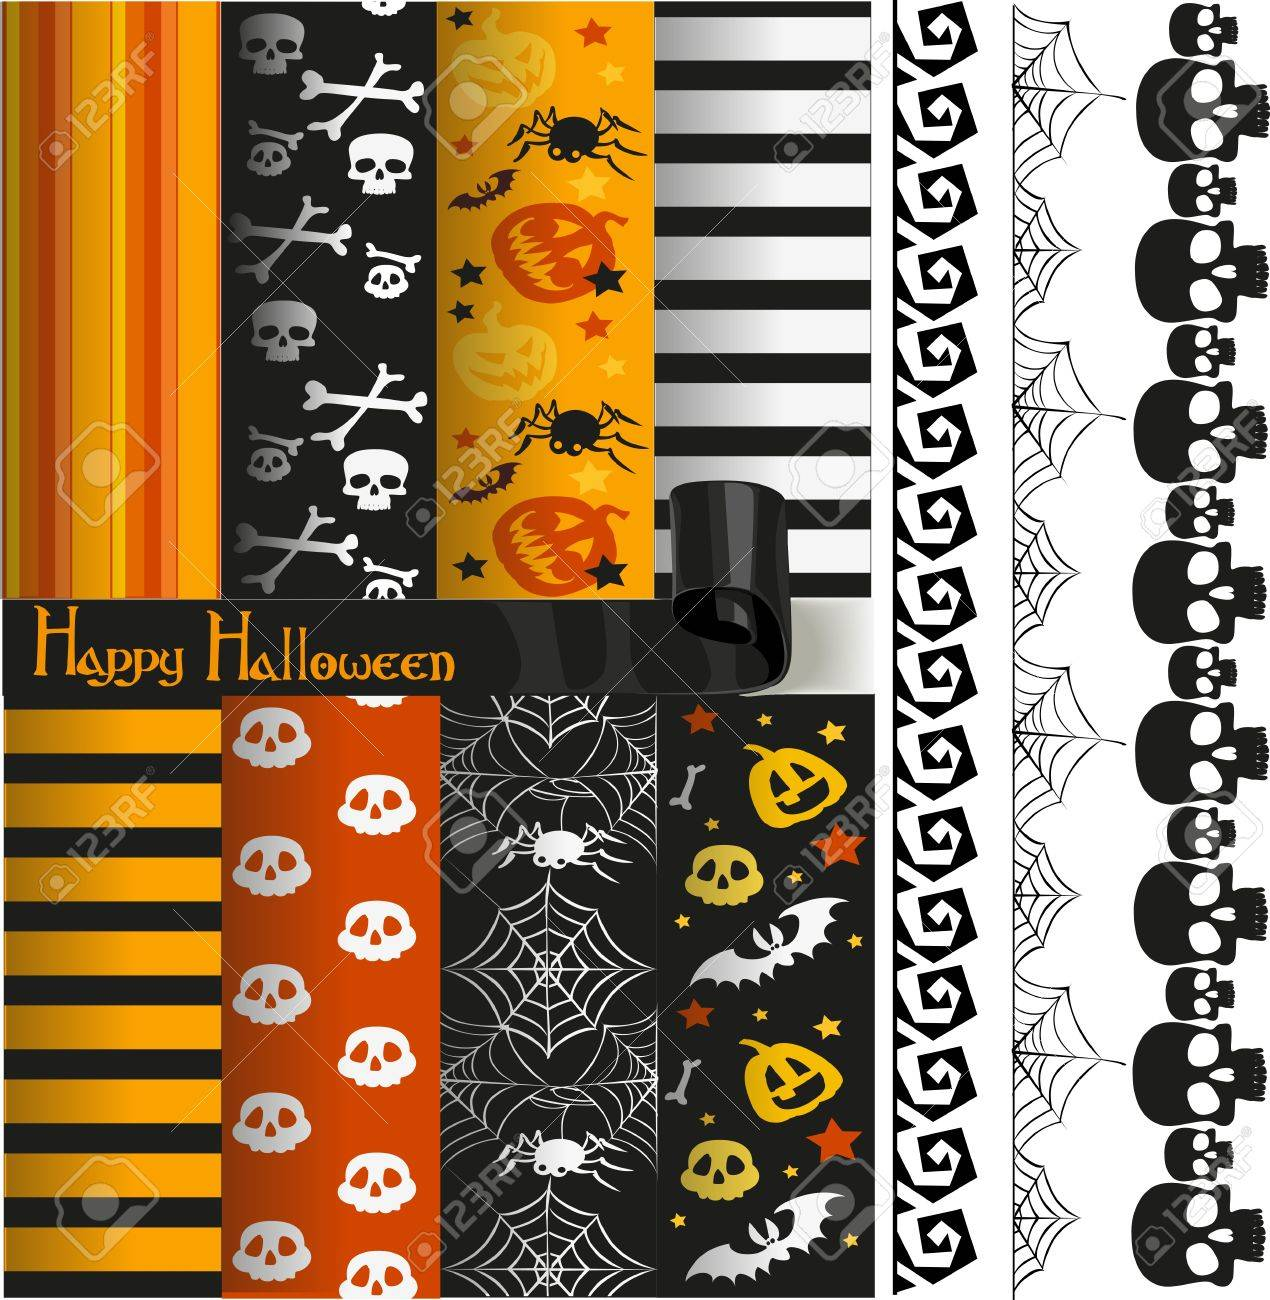 Happy Halloween paper and lace for scrapbook Stock Vector - 15113349